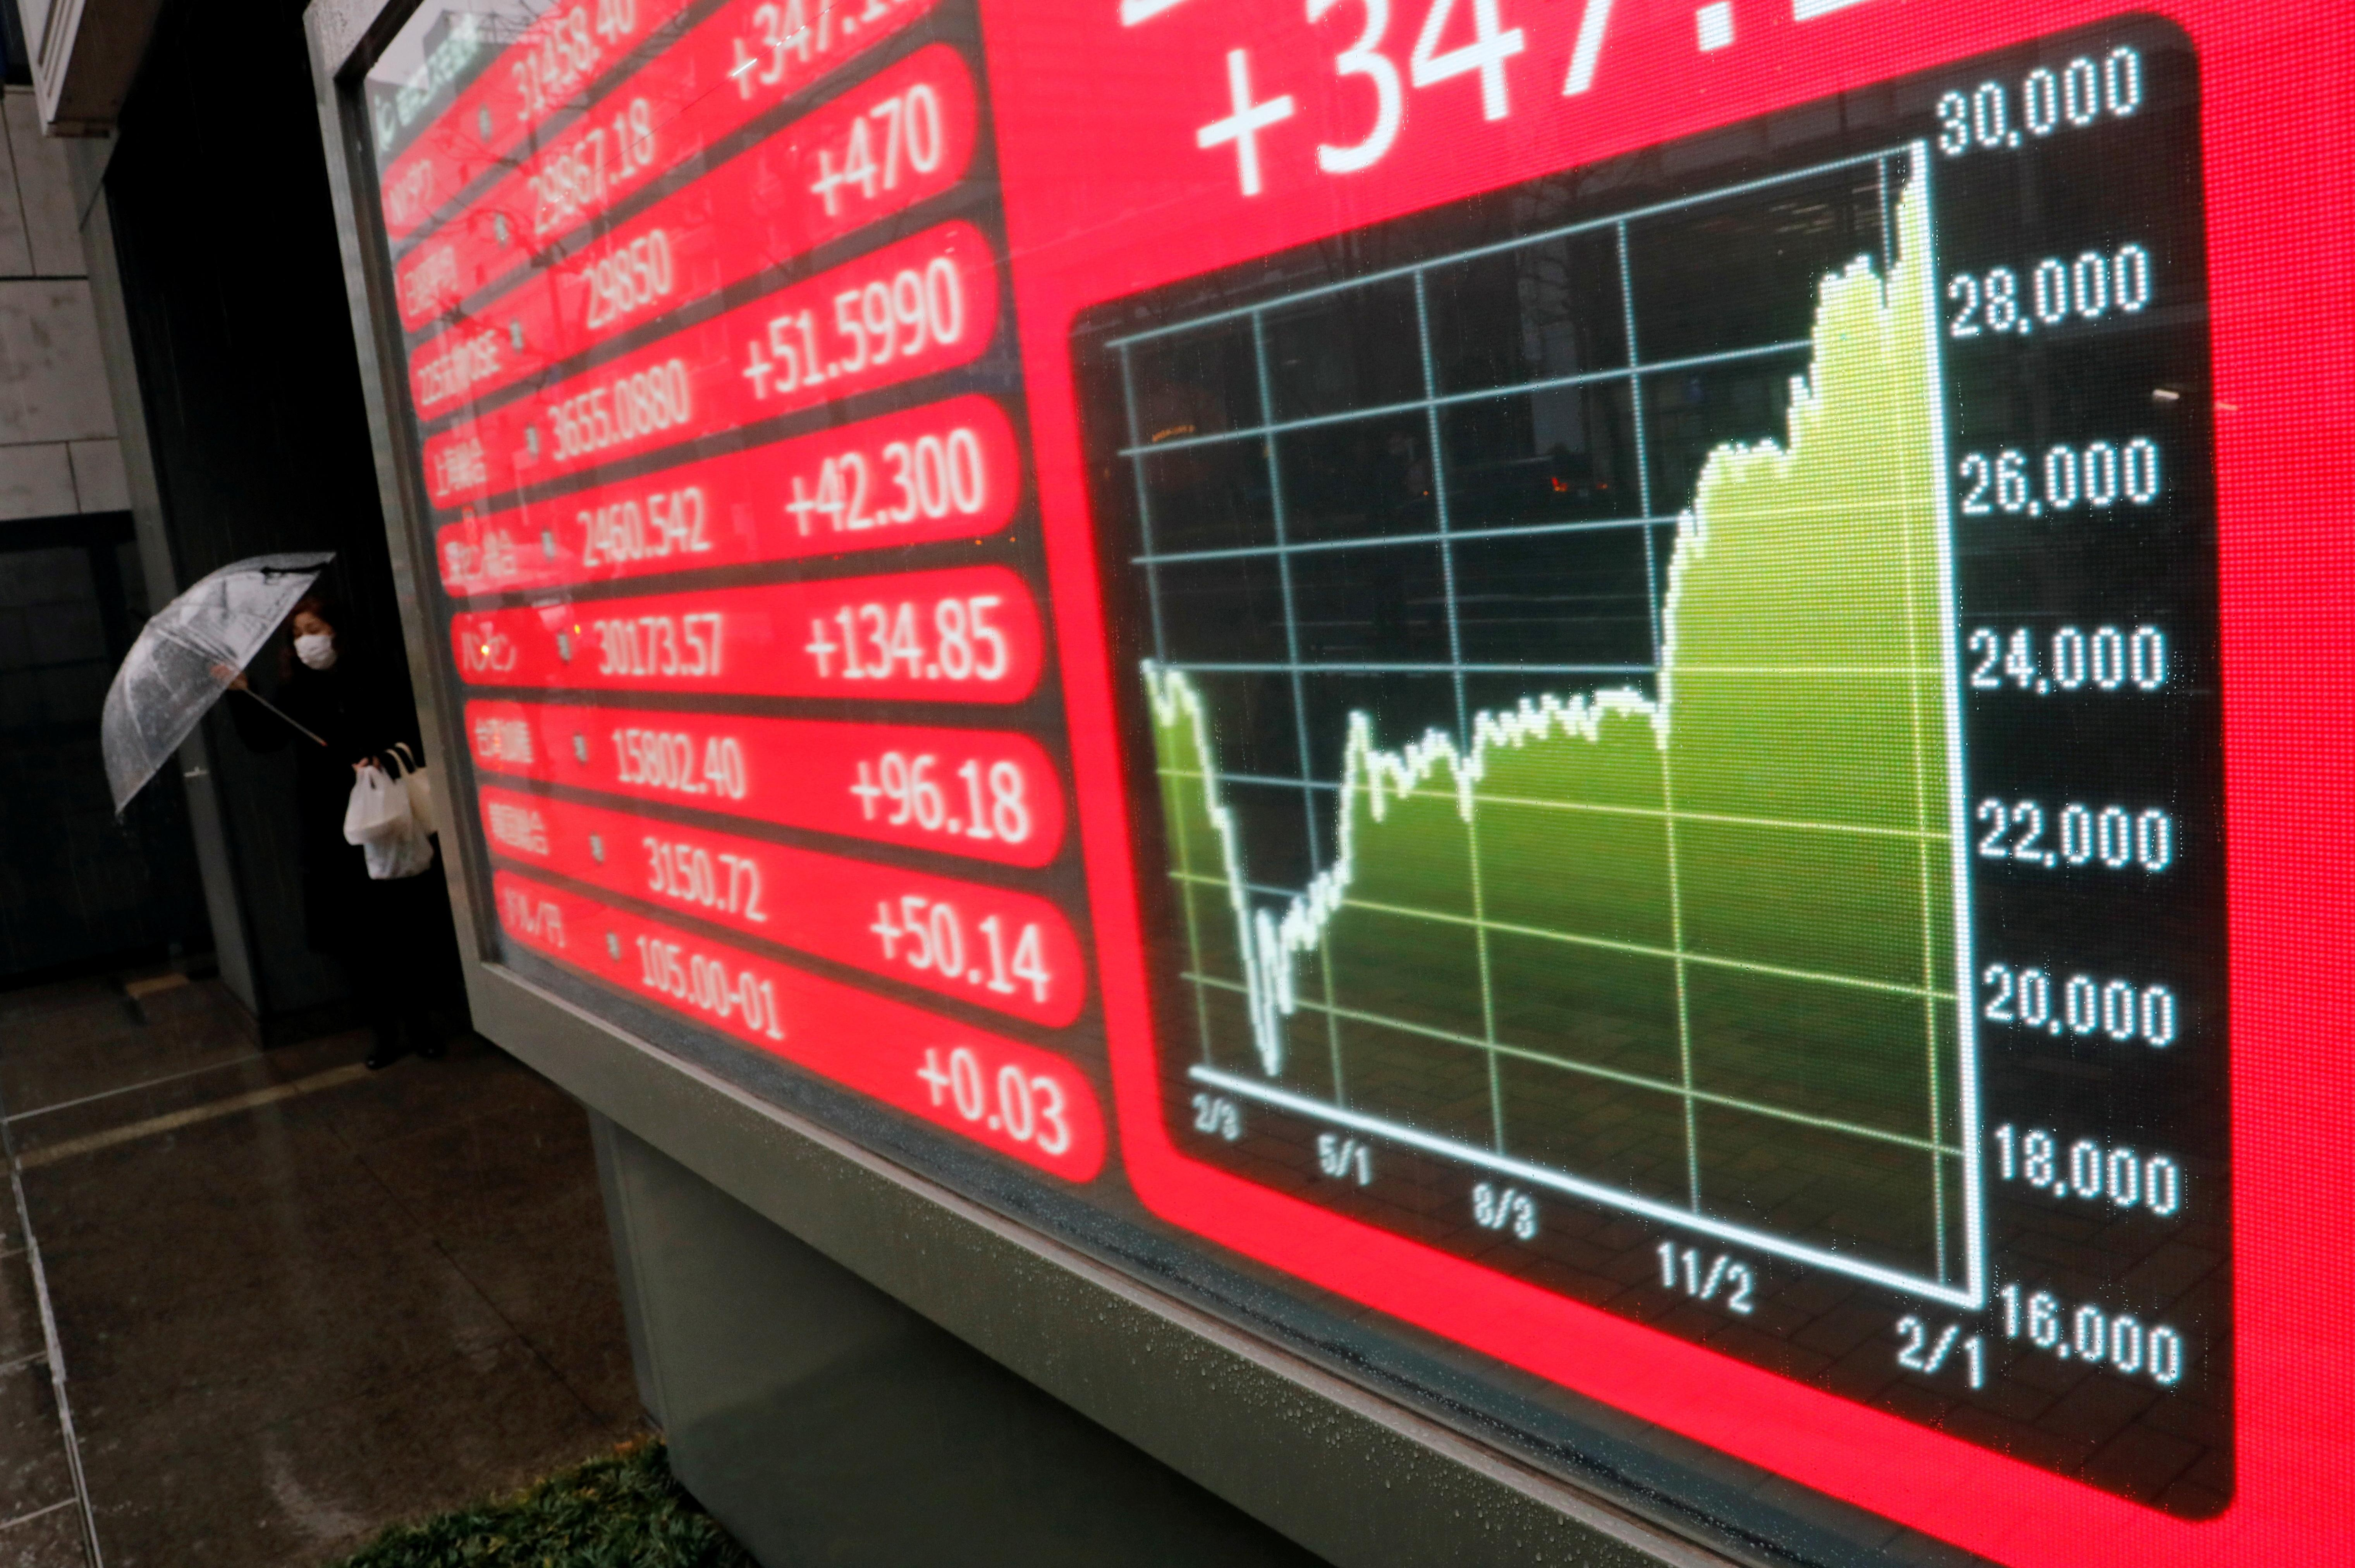 GLOBAL MARKETS-Asian stocks open lower on inflation fears